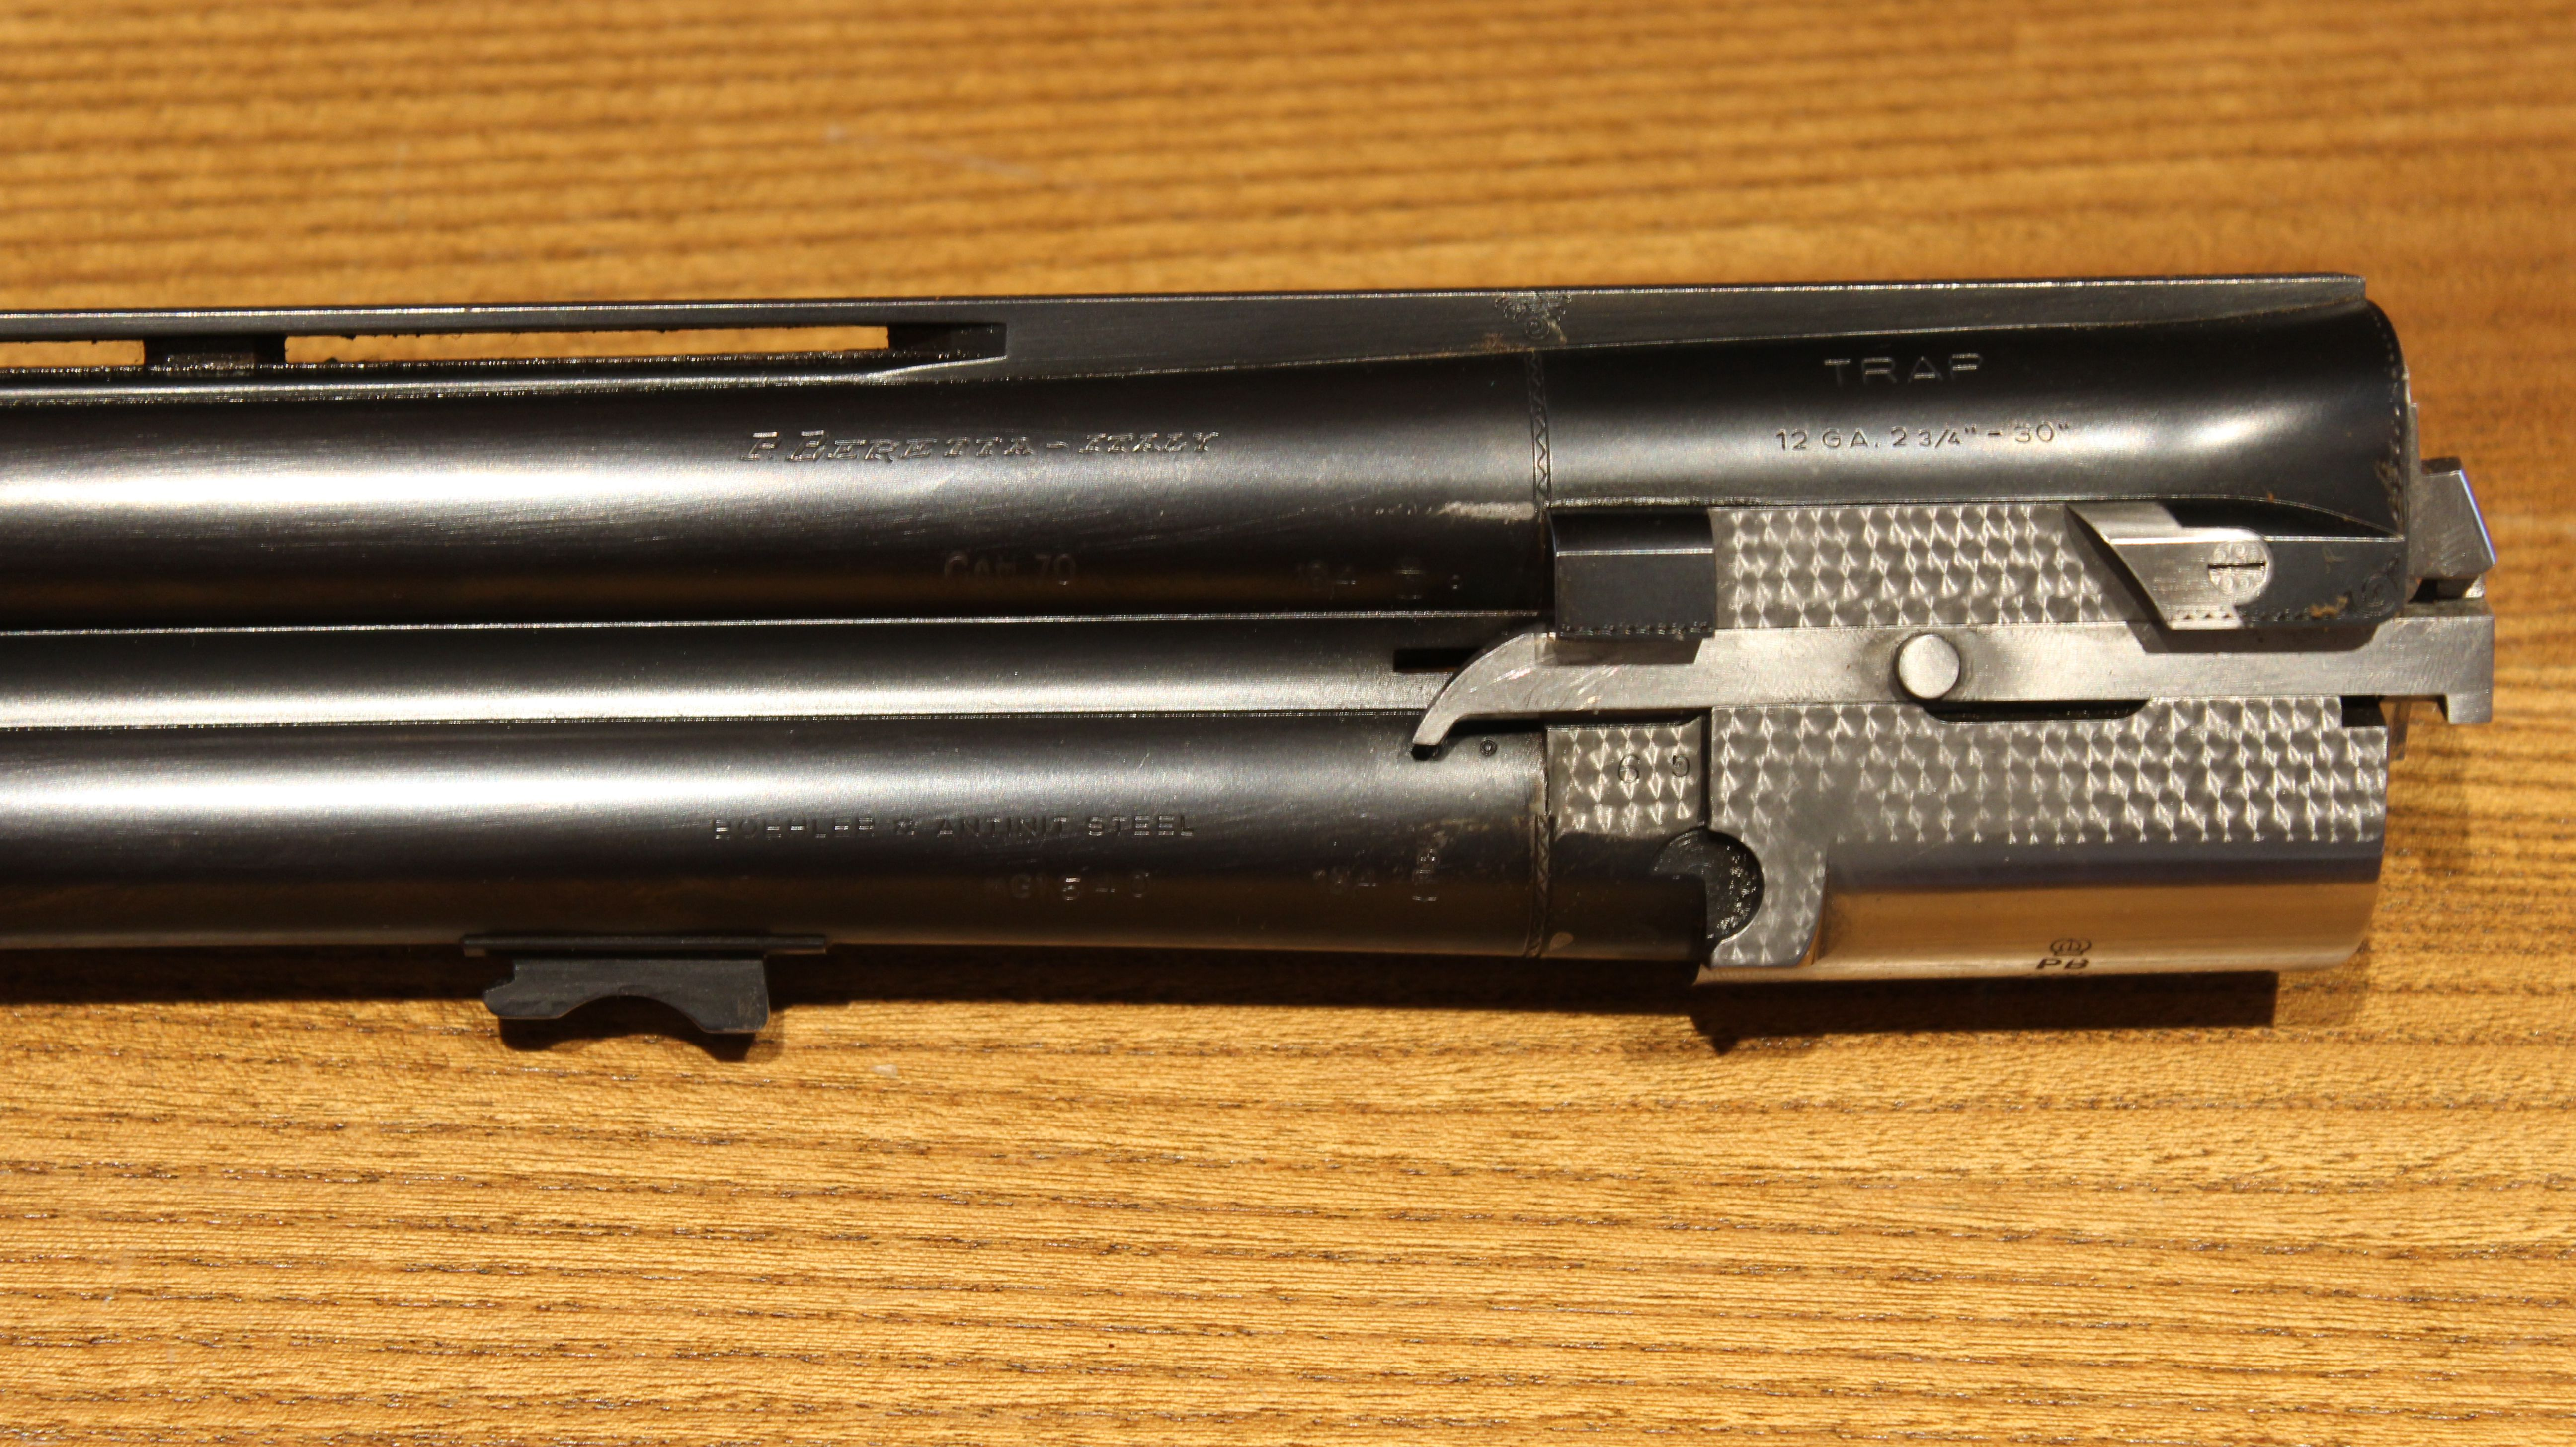 583-SOVRAPPOSTO P. BERETTA MOD. SO5 CAL. 12